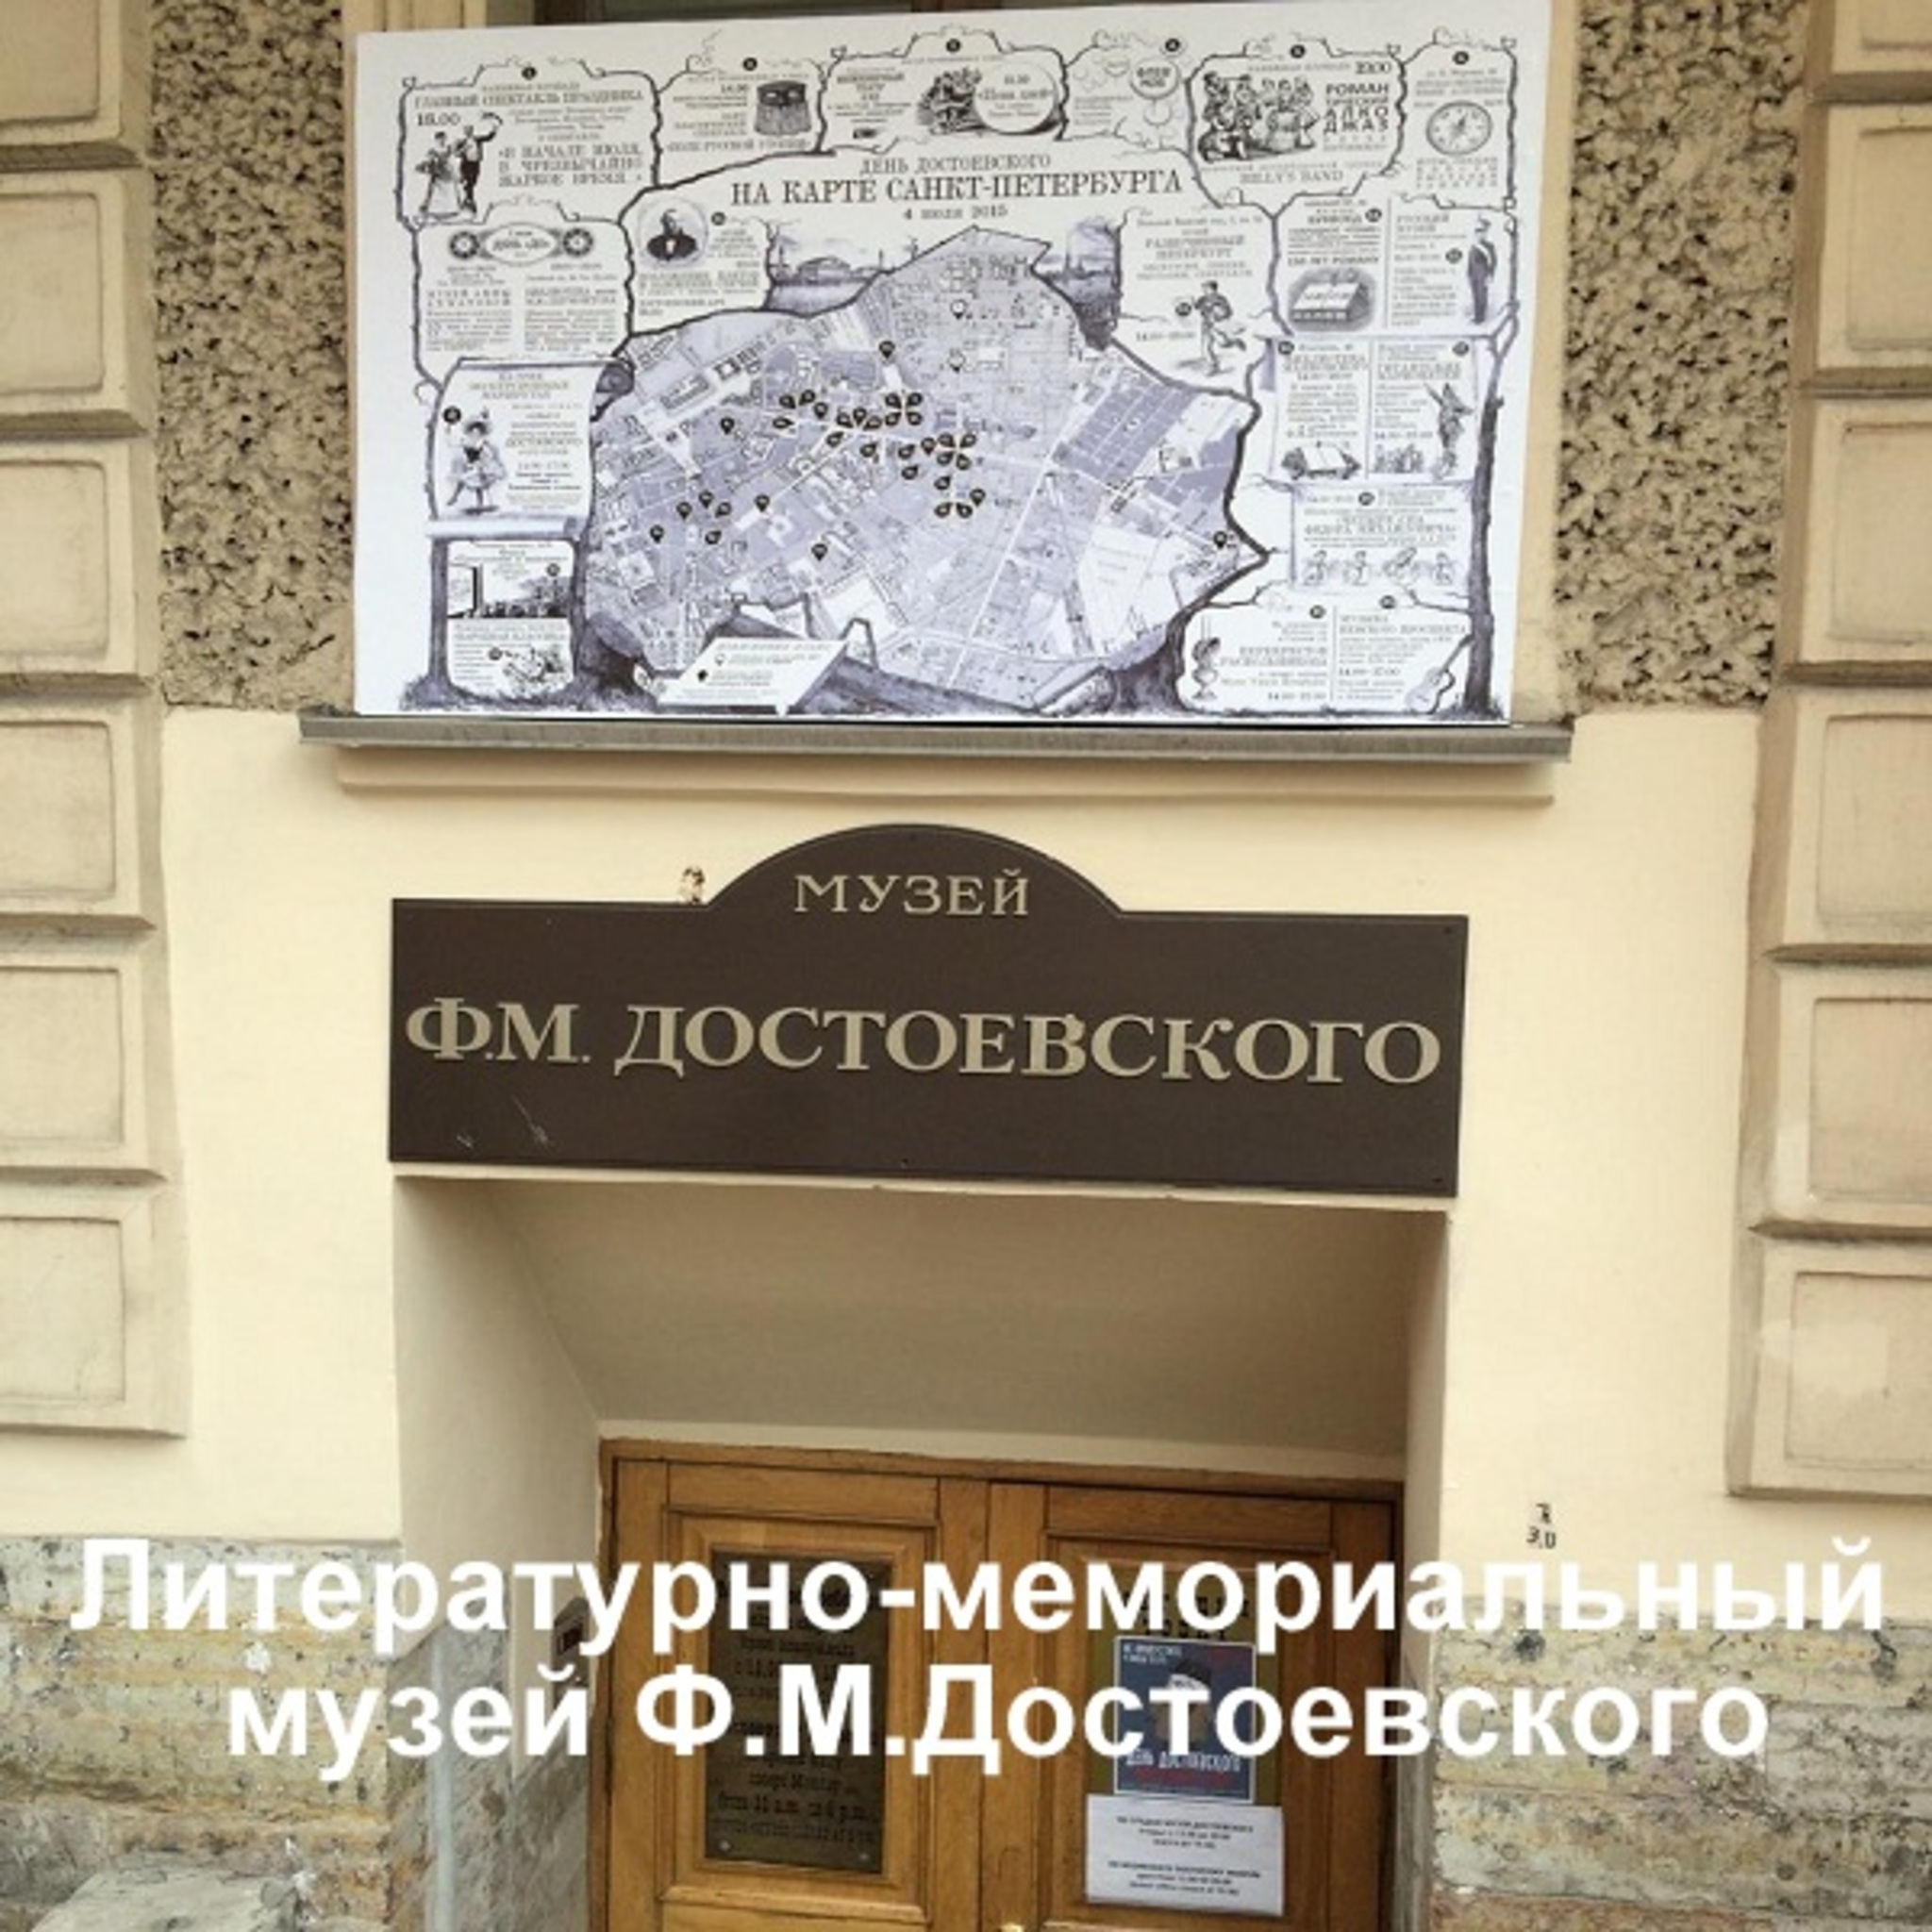 Literary-memorial Museum of F. M. Dostoevsky